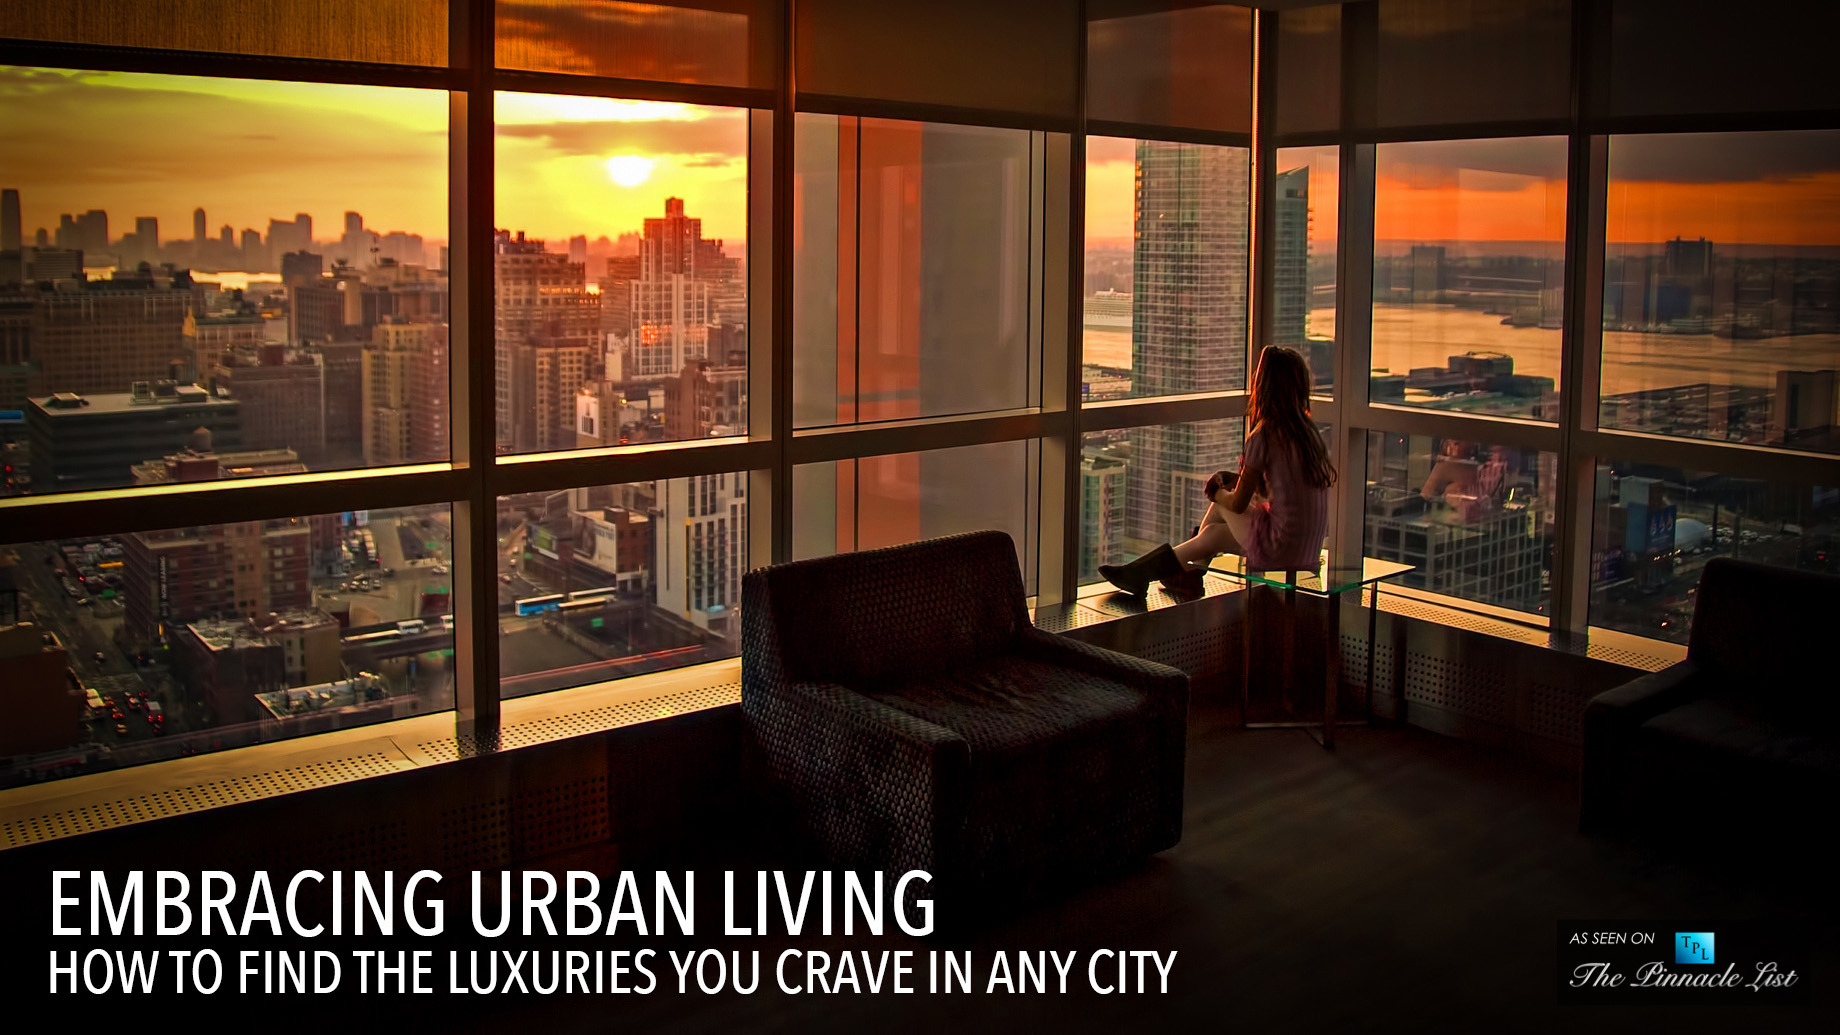 Embracing Urban Living - How to Find the Luxuries You Crave in Any City